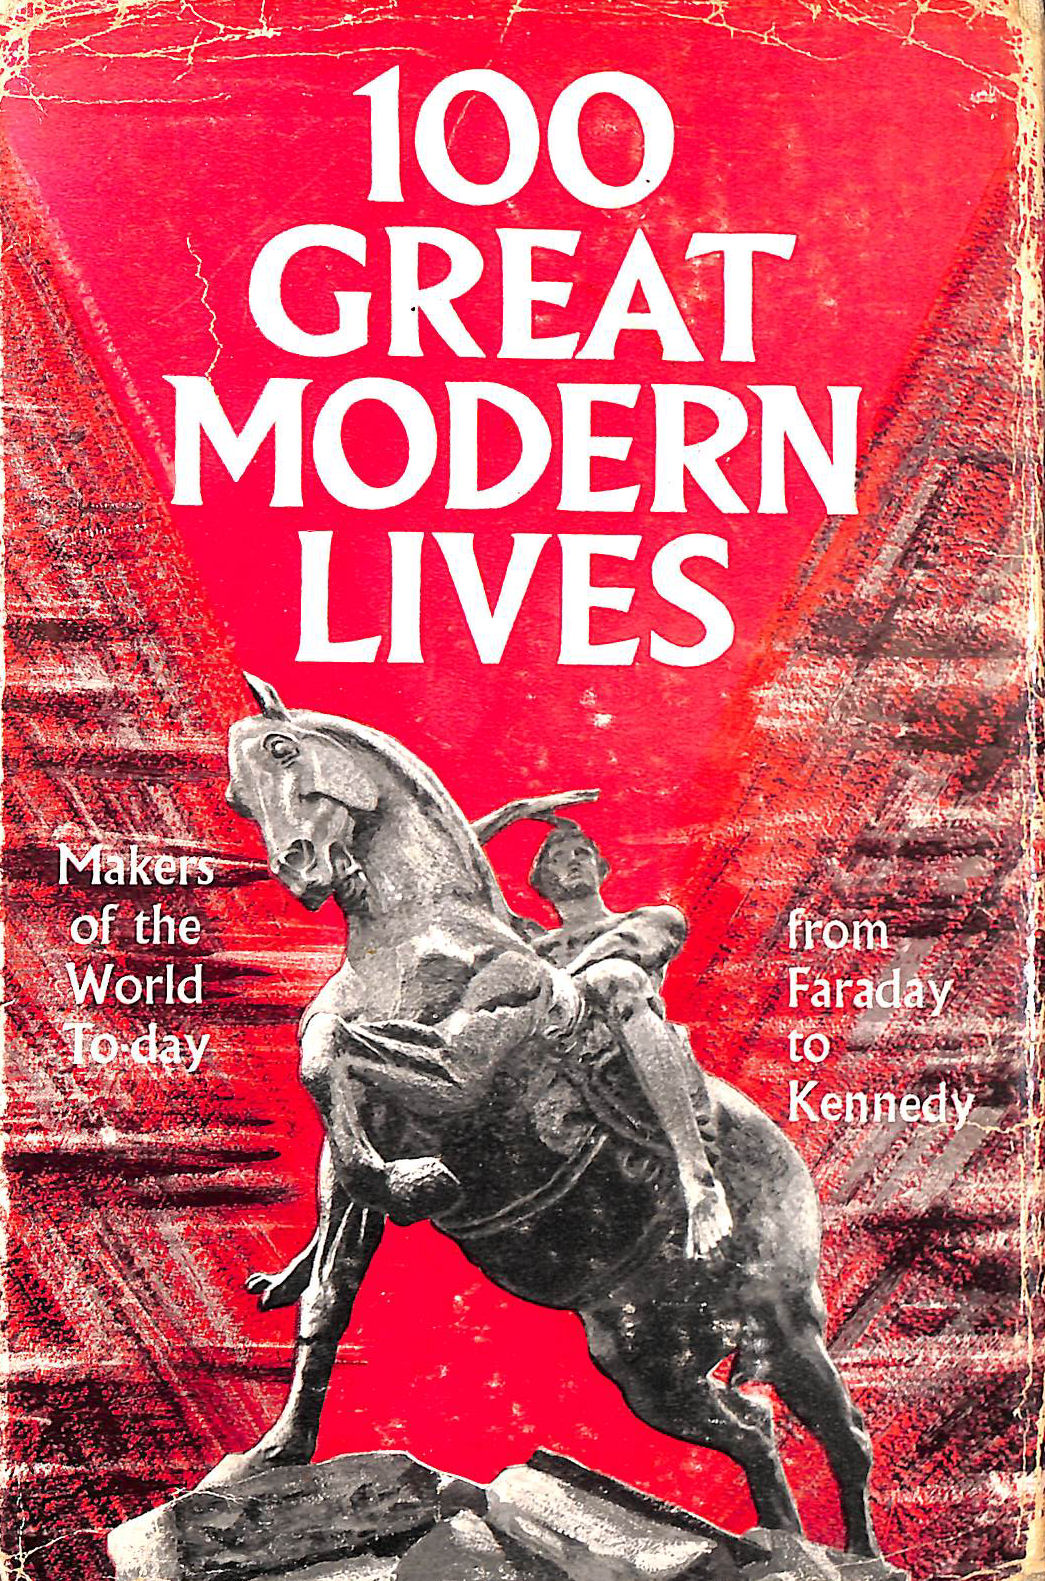 Image for 100 Great Modern Lives: Makers Of The World To-Day From Faraday To Kennedy